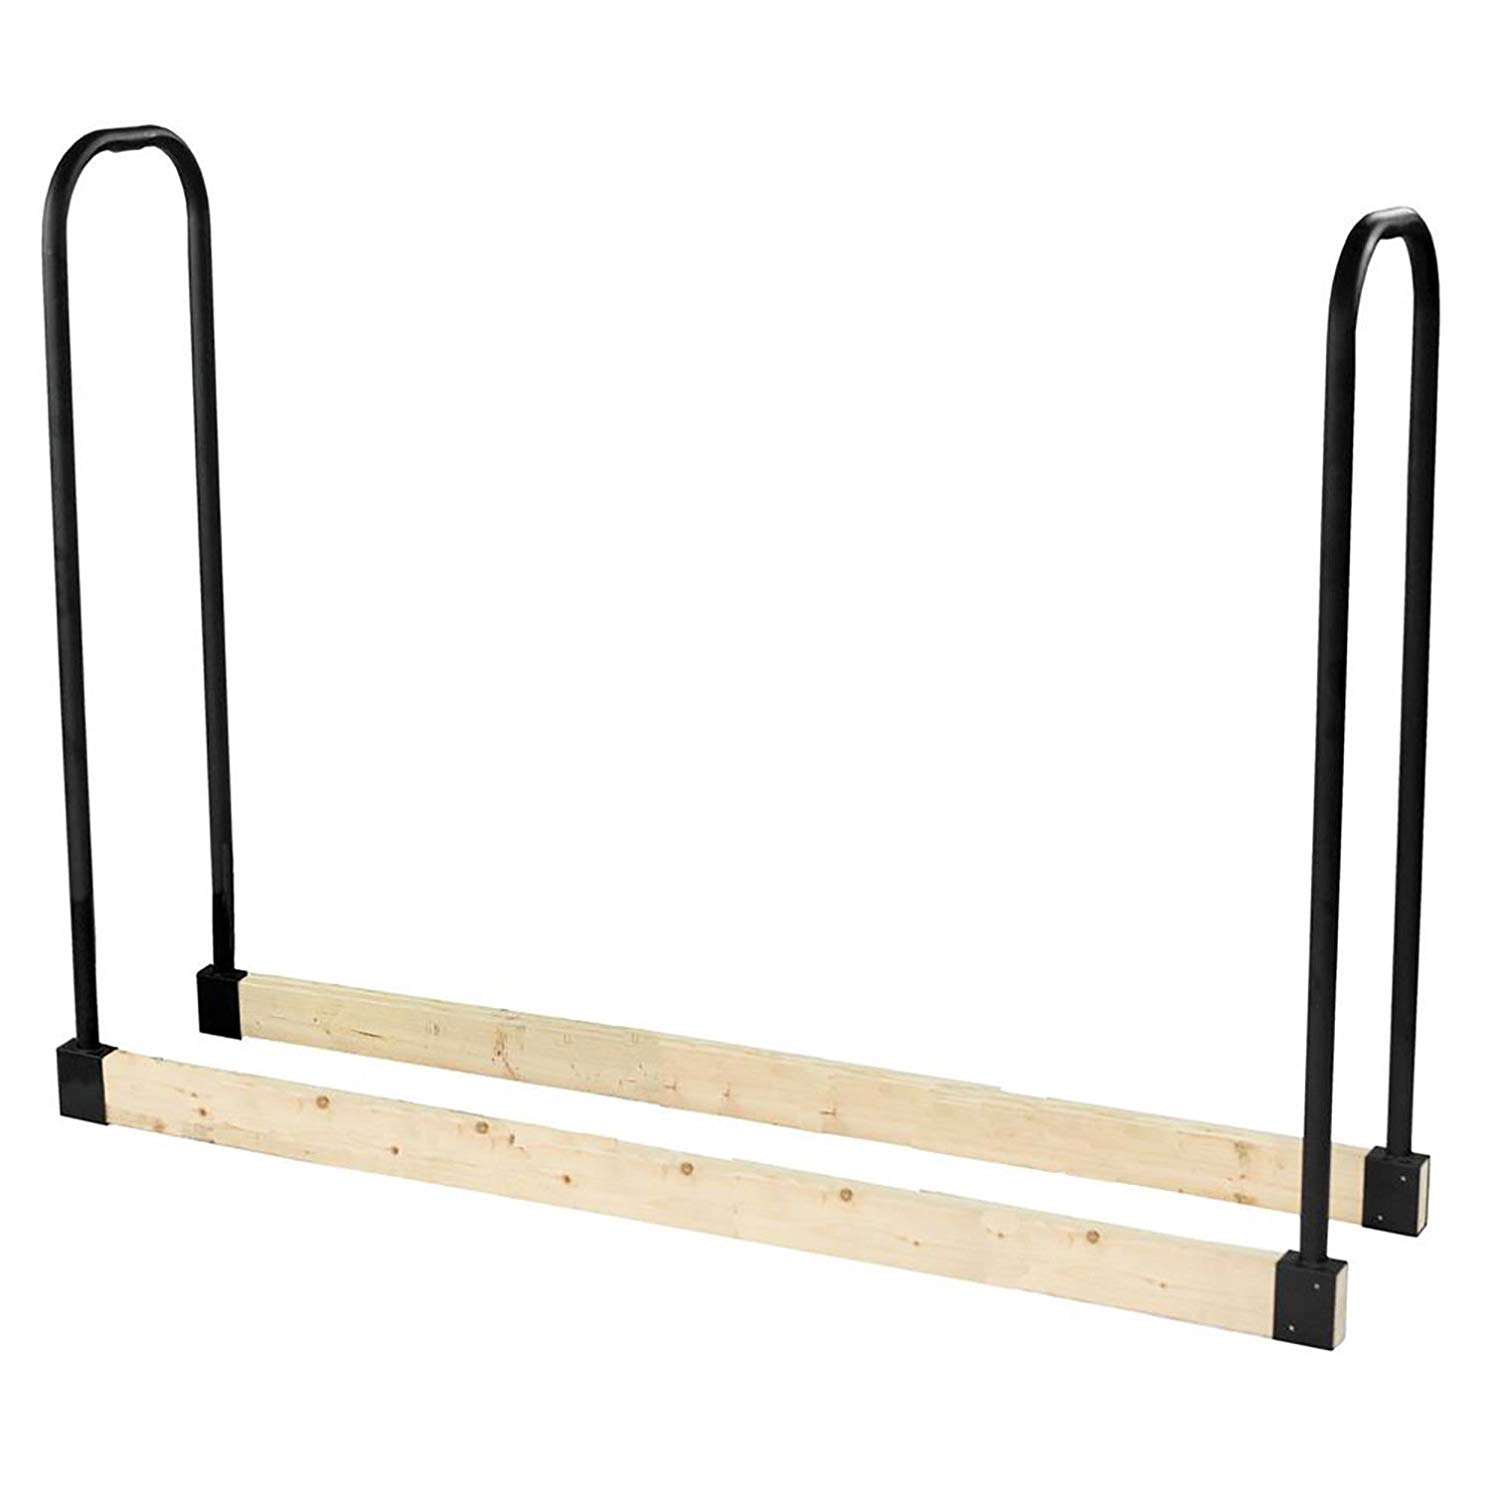 NUMBERNINE FIREWOOD RACK BRACKET KIT Adjustable Wood Log Outdoor Storage Durable Steel,firewood rack